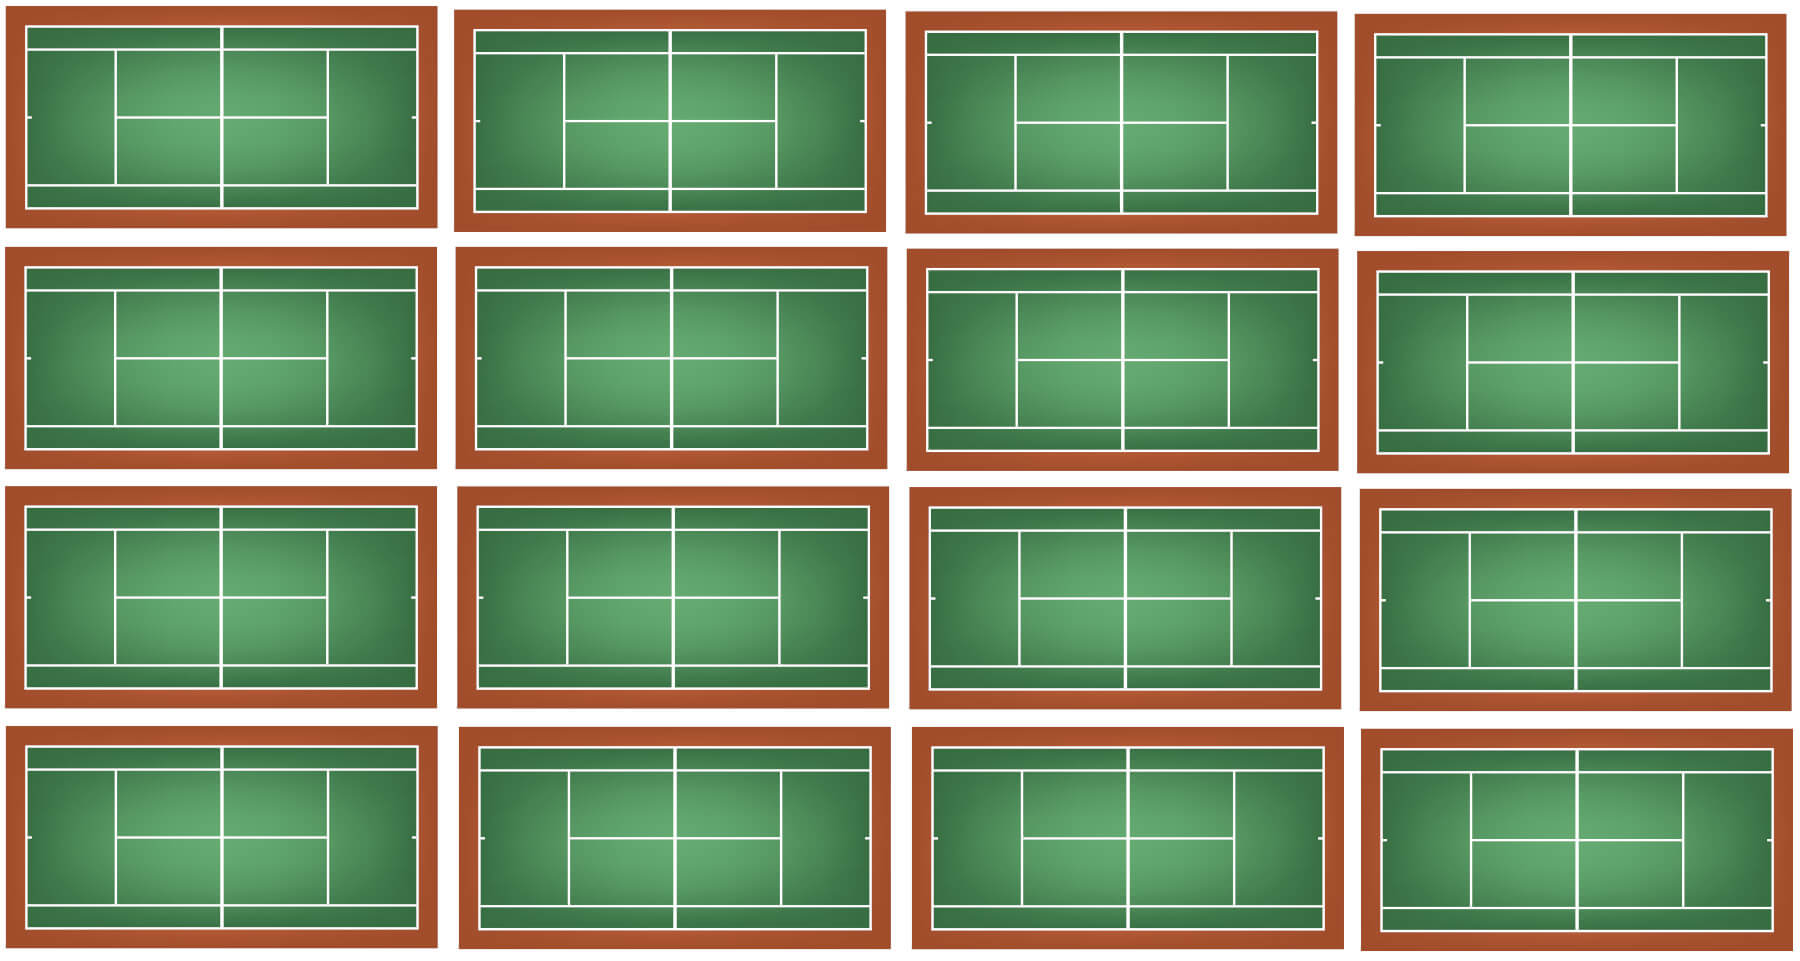 16 Tennis Courts side by side